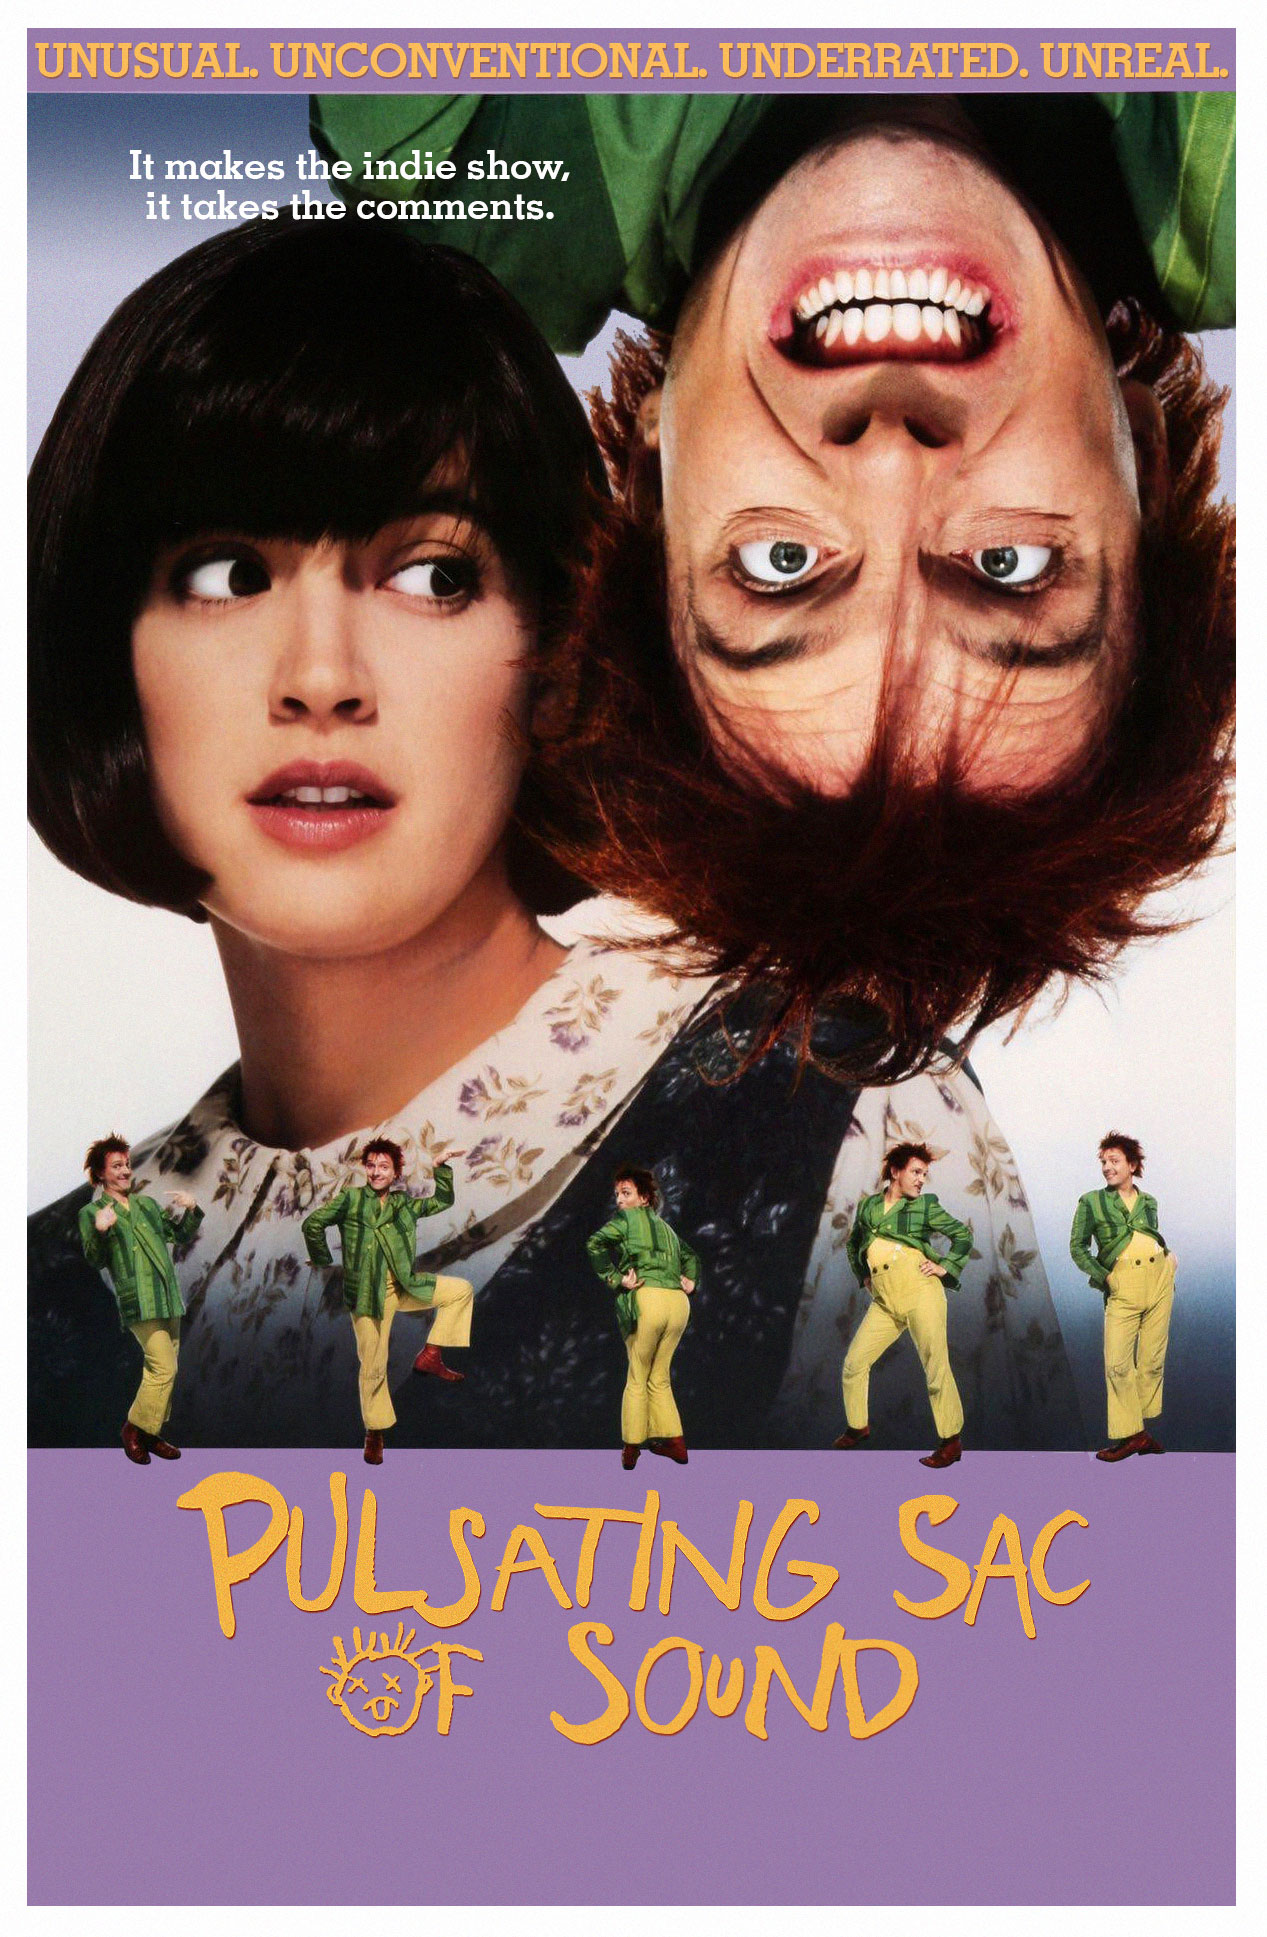 The Pulsating Sac Of Sound - Drop Dead Fred